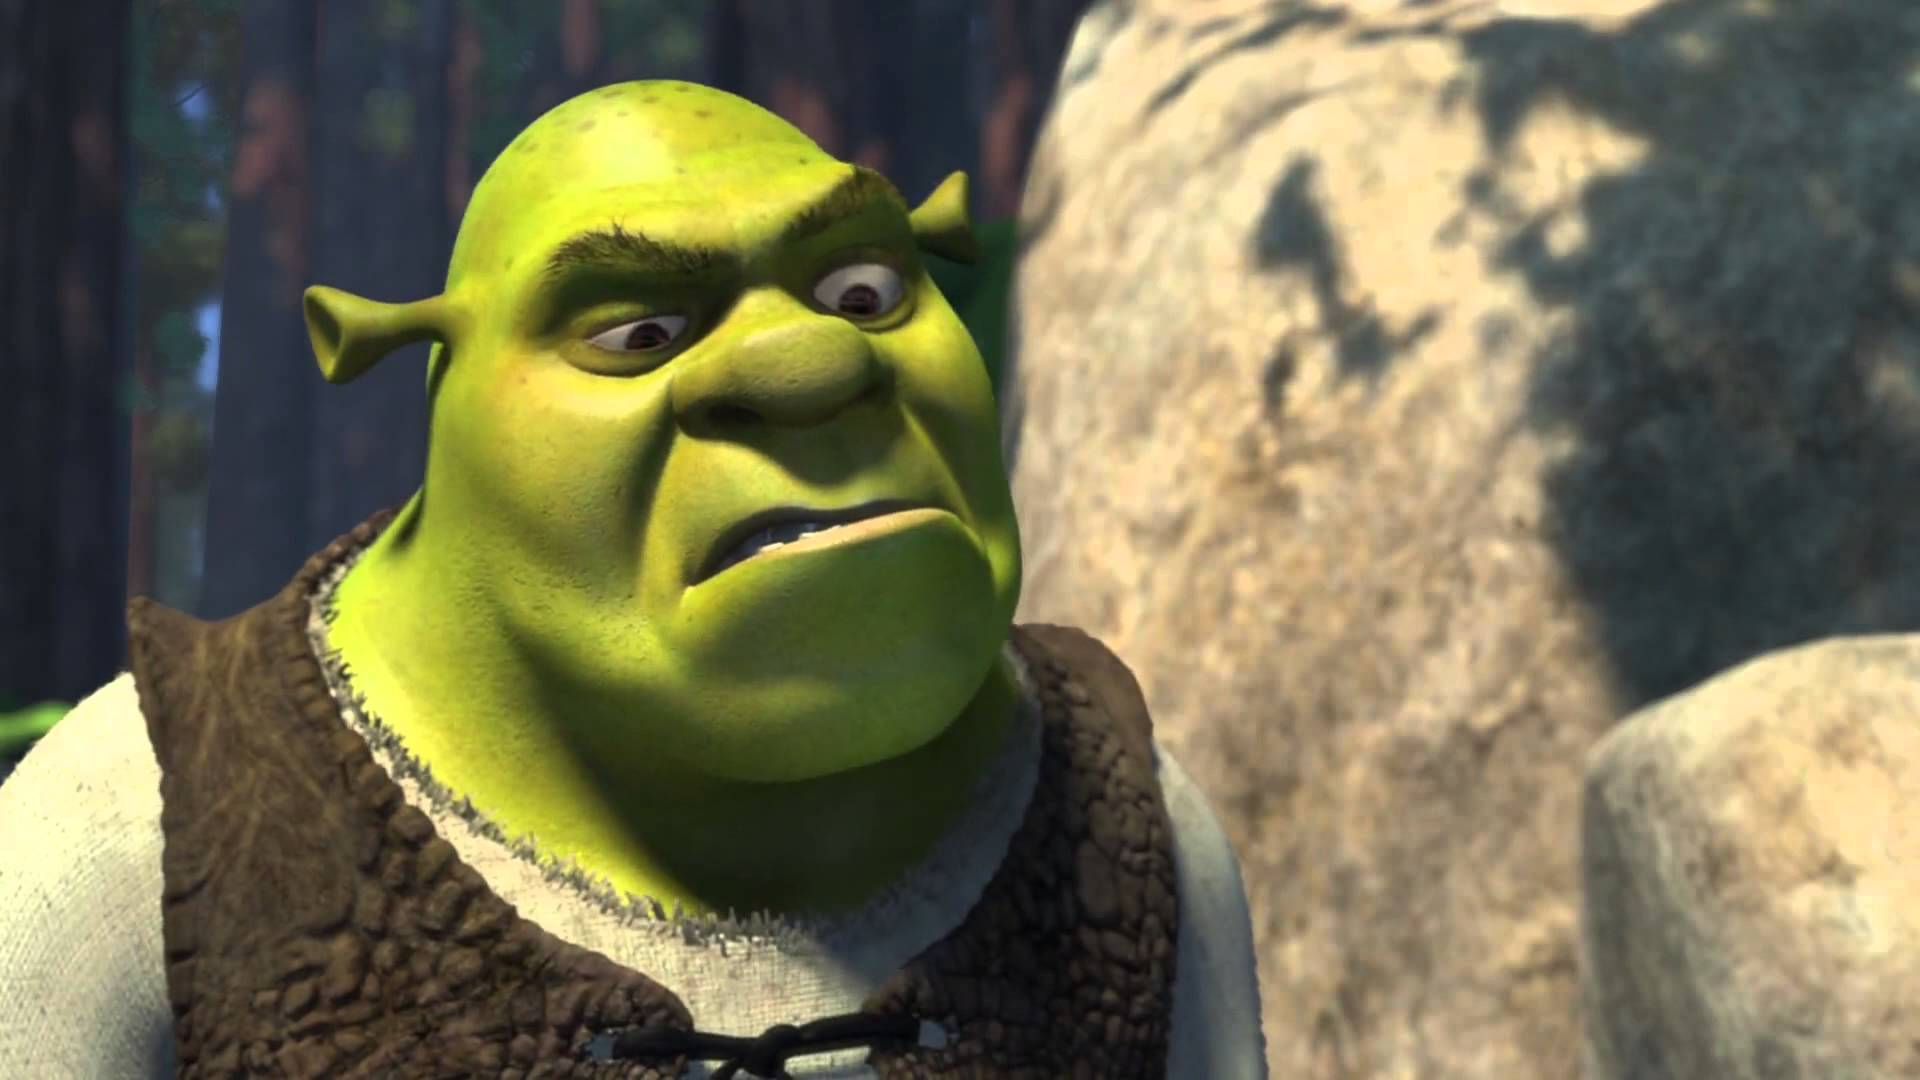 Adding Shrek to Dark Souls III is much more fun than you'd think